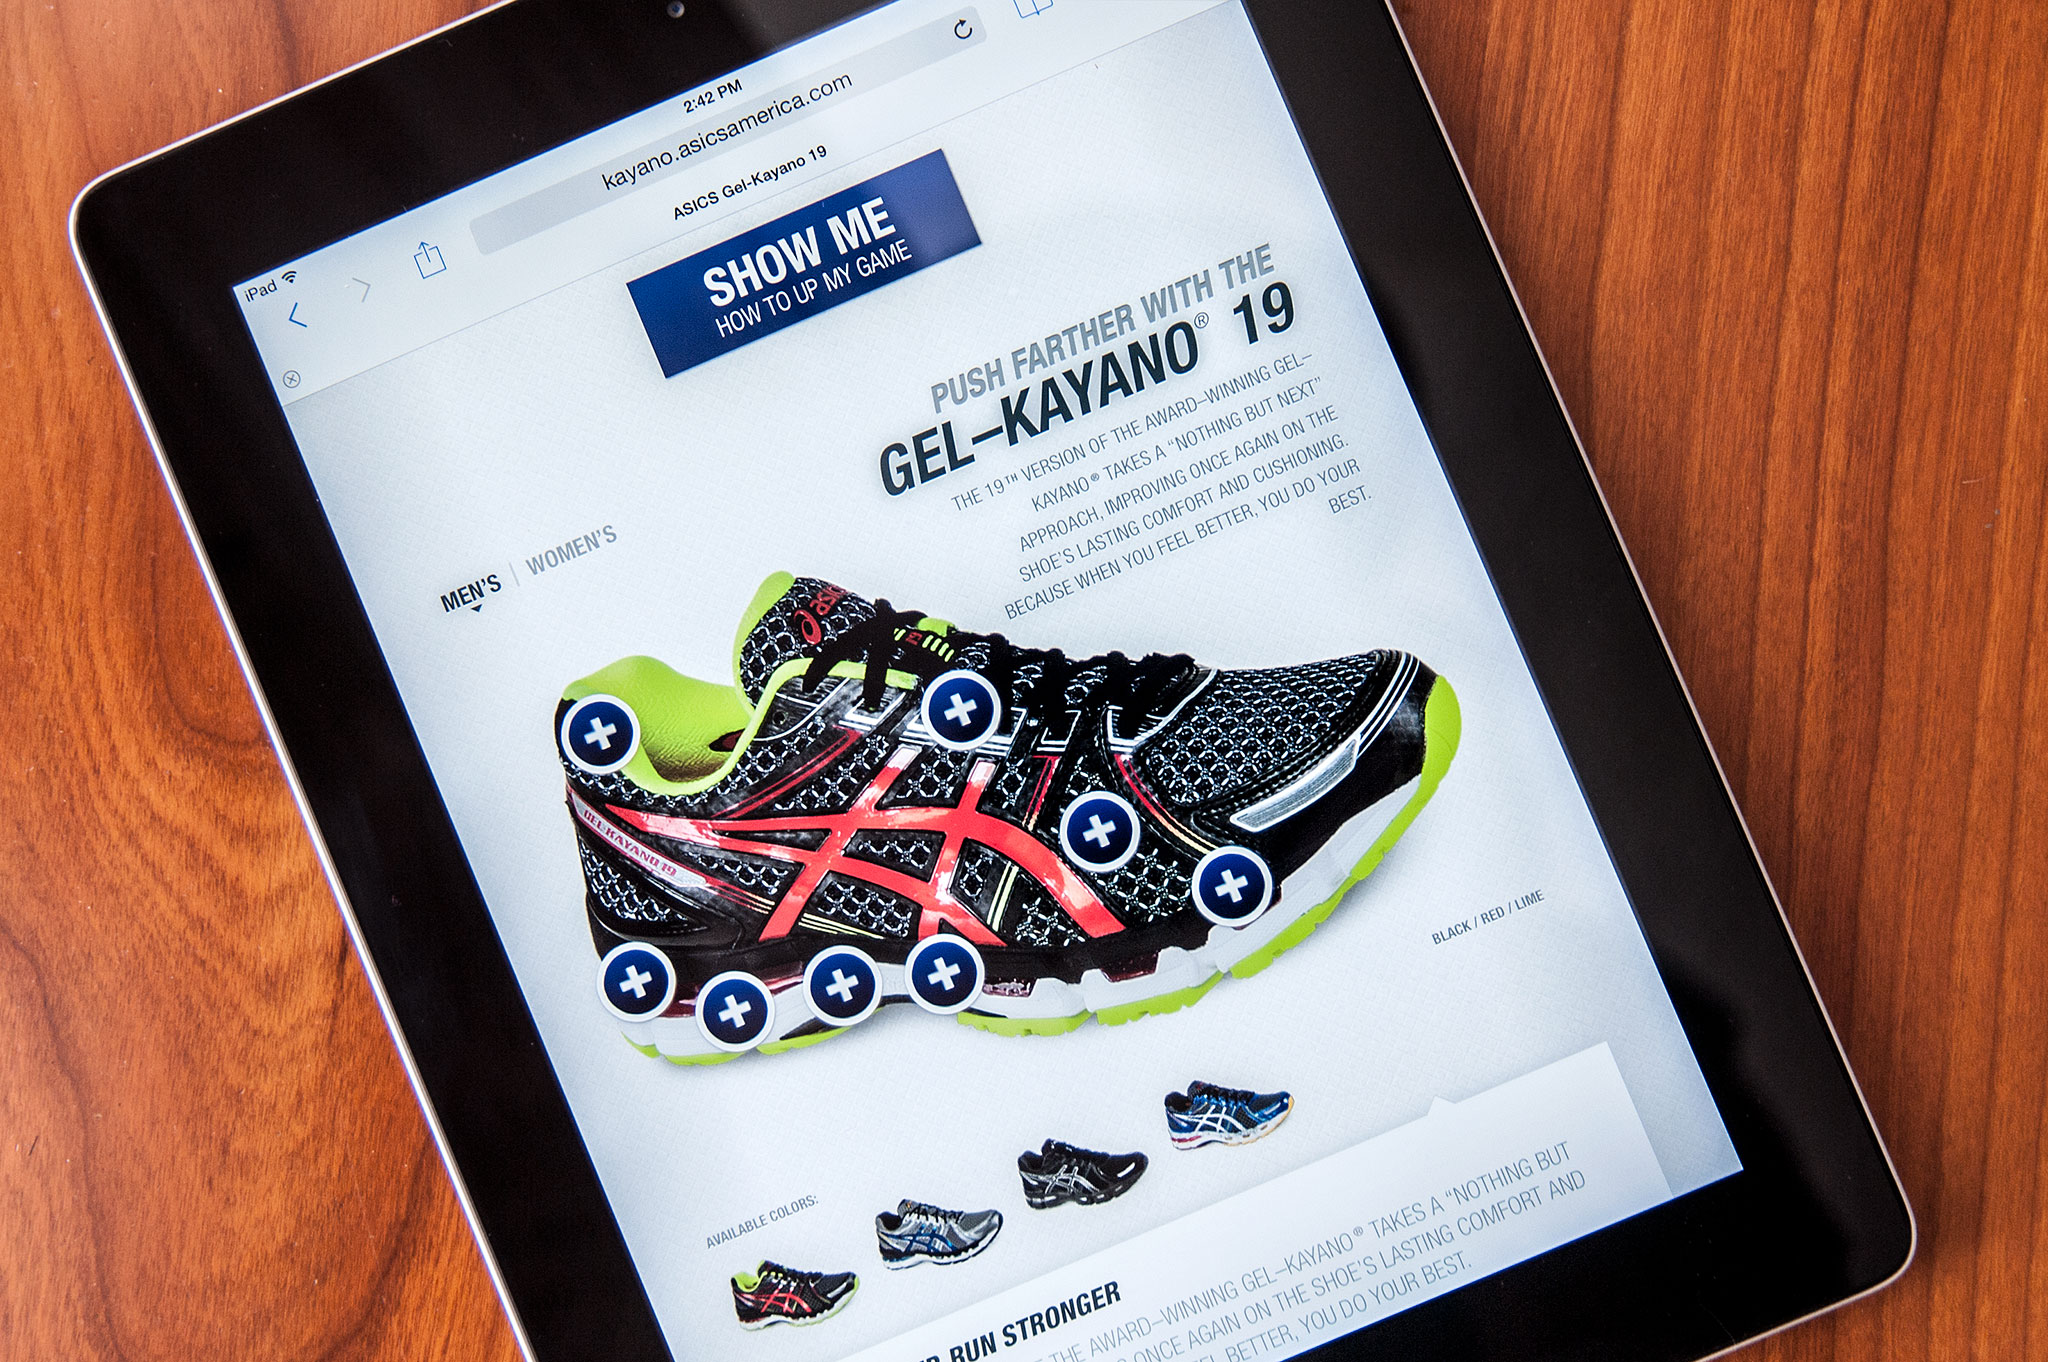 ASICS Kayano 19 Responsive Site on iPad